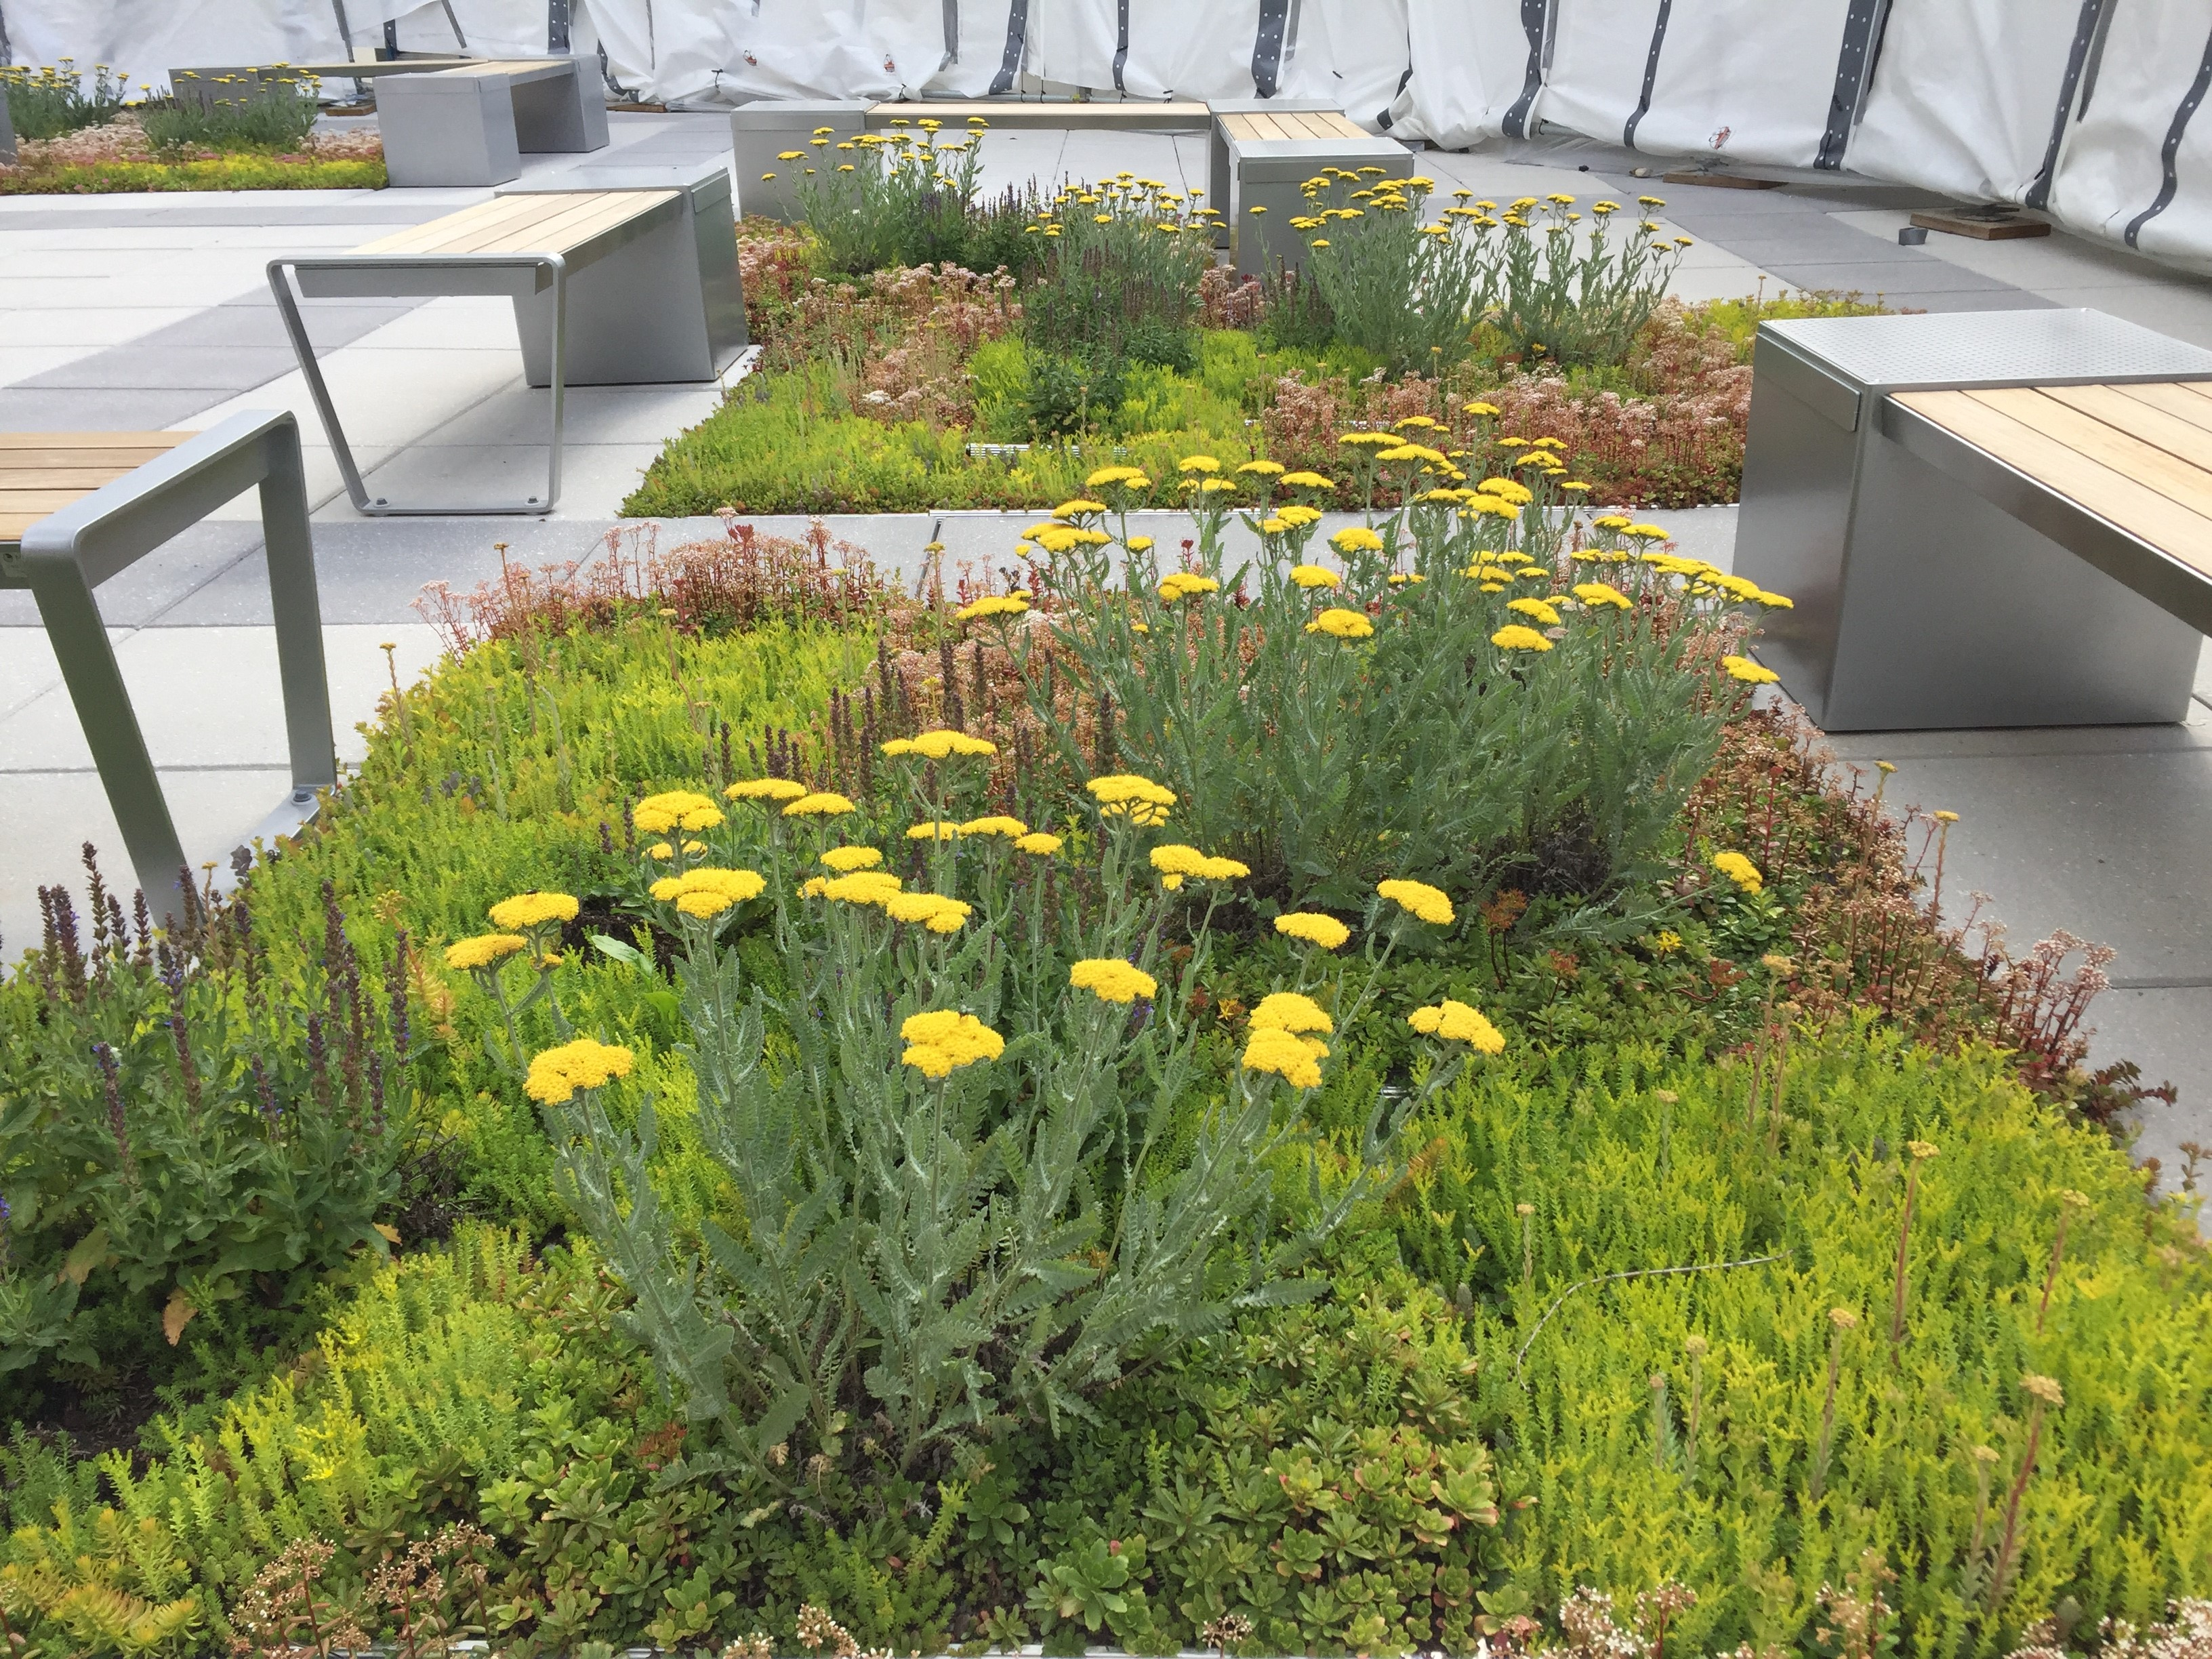 How To Install A Green Roof A Guide For Property Managers